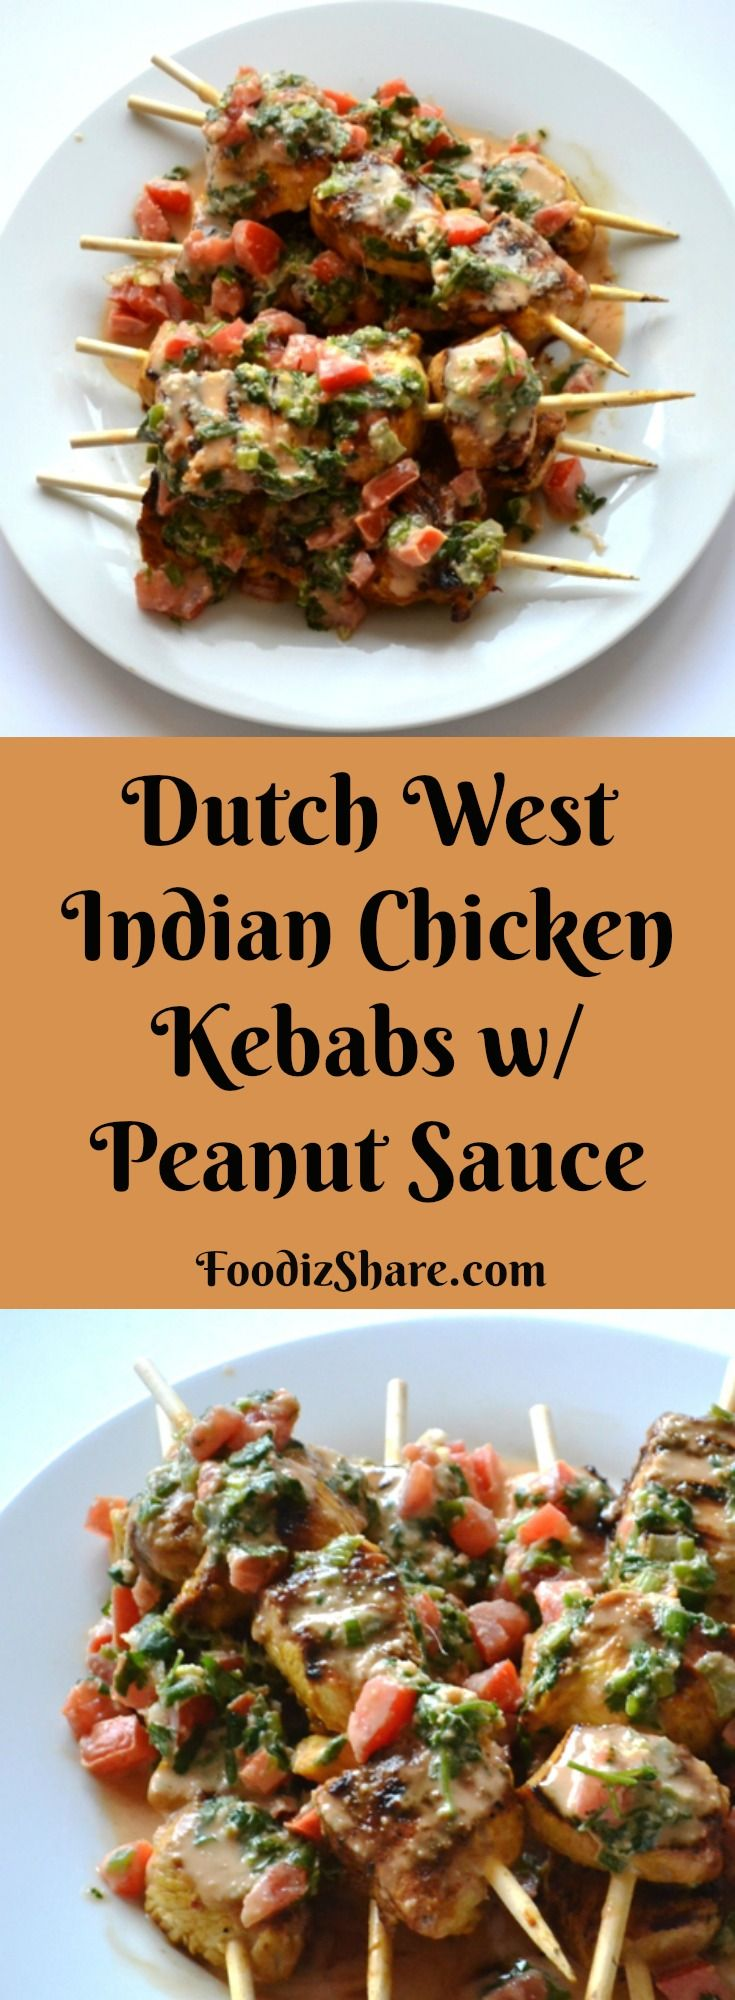 Caribbean chicken kebab dish served with peanut sauce